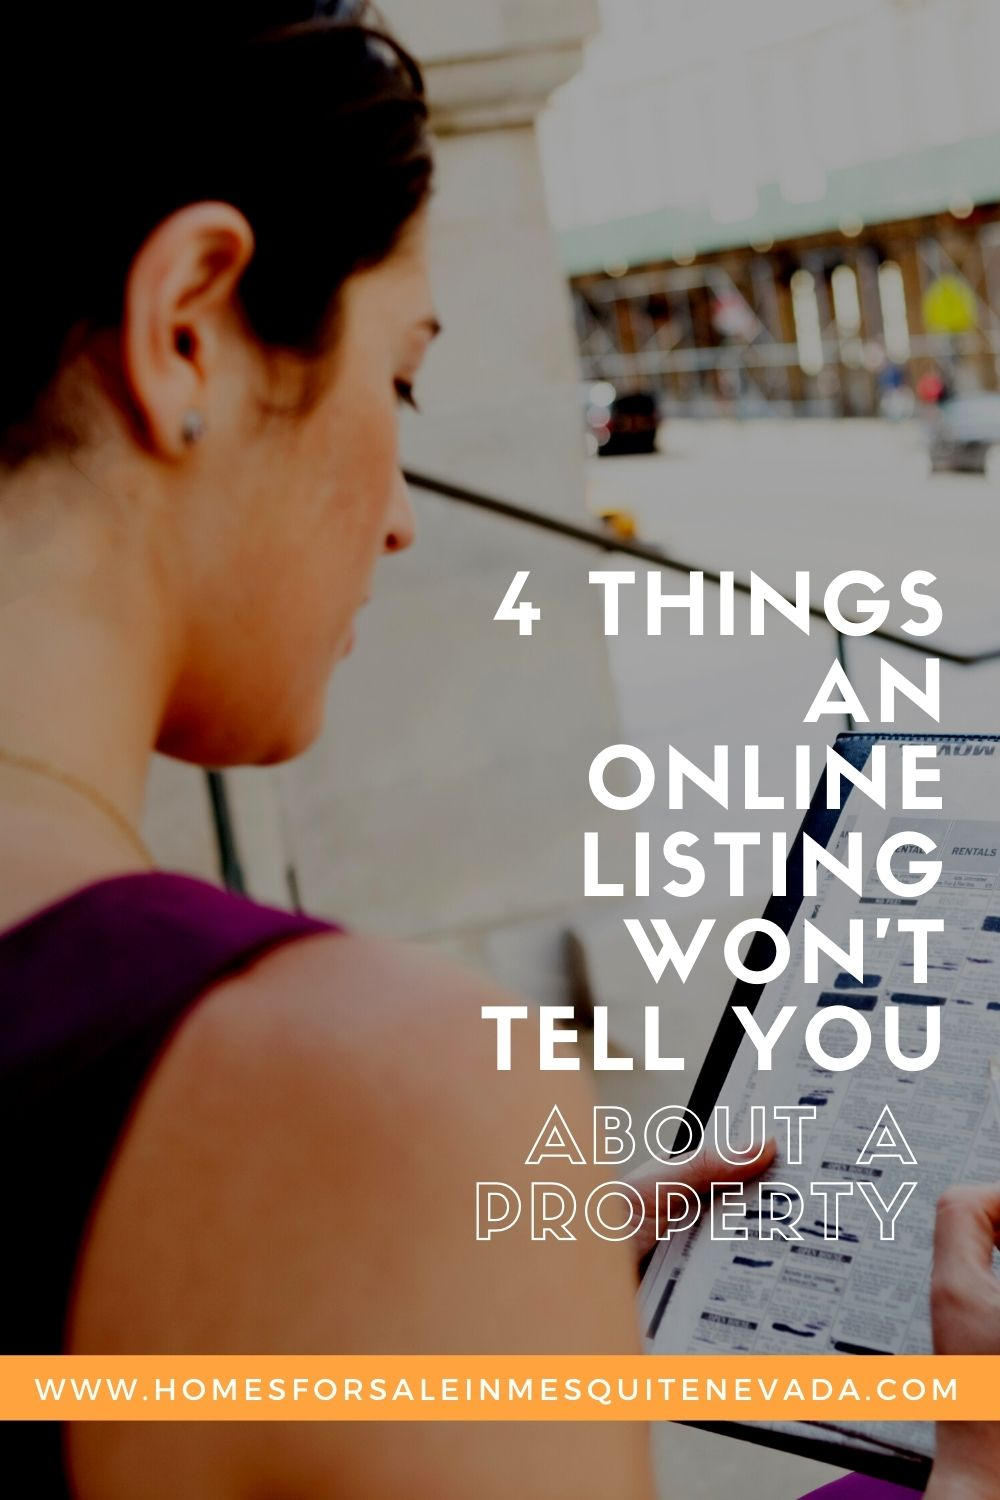 4 Things an Online Listing Won't Tell You About a Property